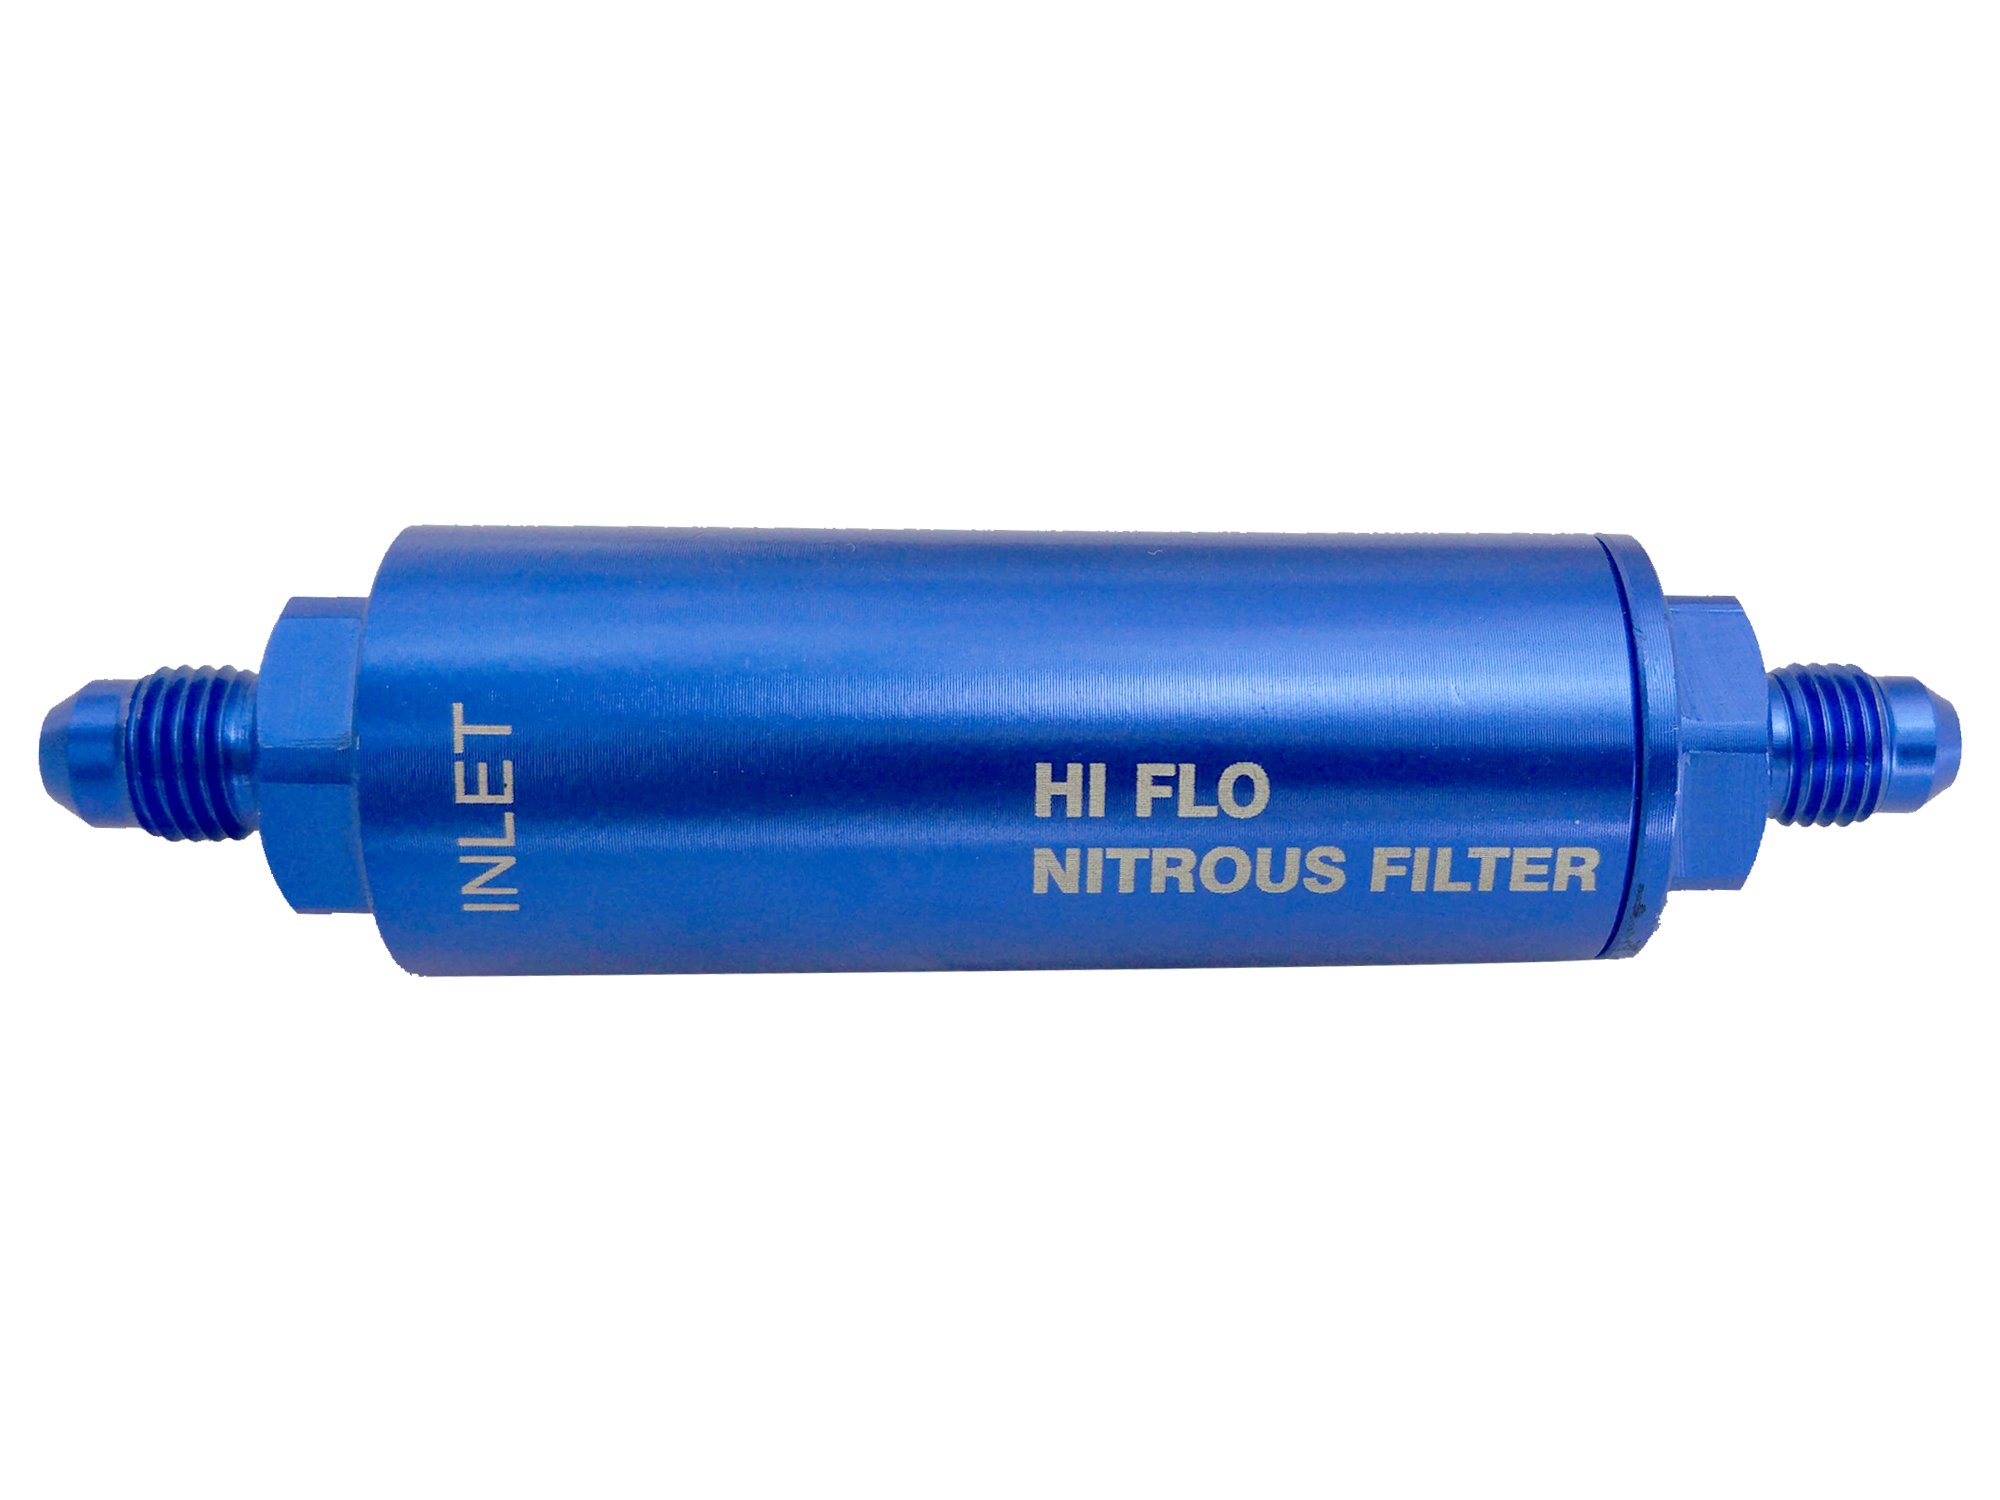 Nitrous and Fuel Filters Anodized Billet Aluminum Work For N-O-S/NITROUS 15552 Nit140 Micron (-6AN ) Blue